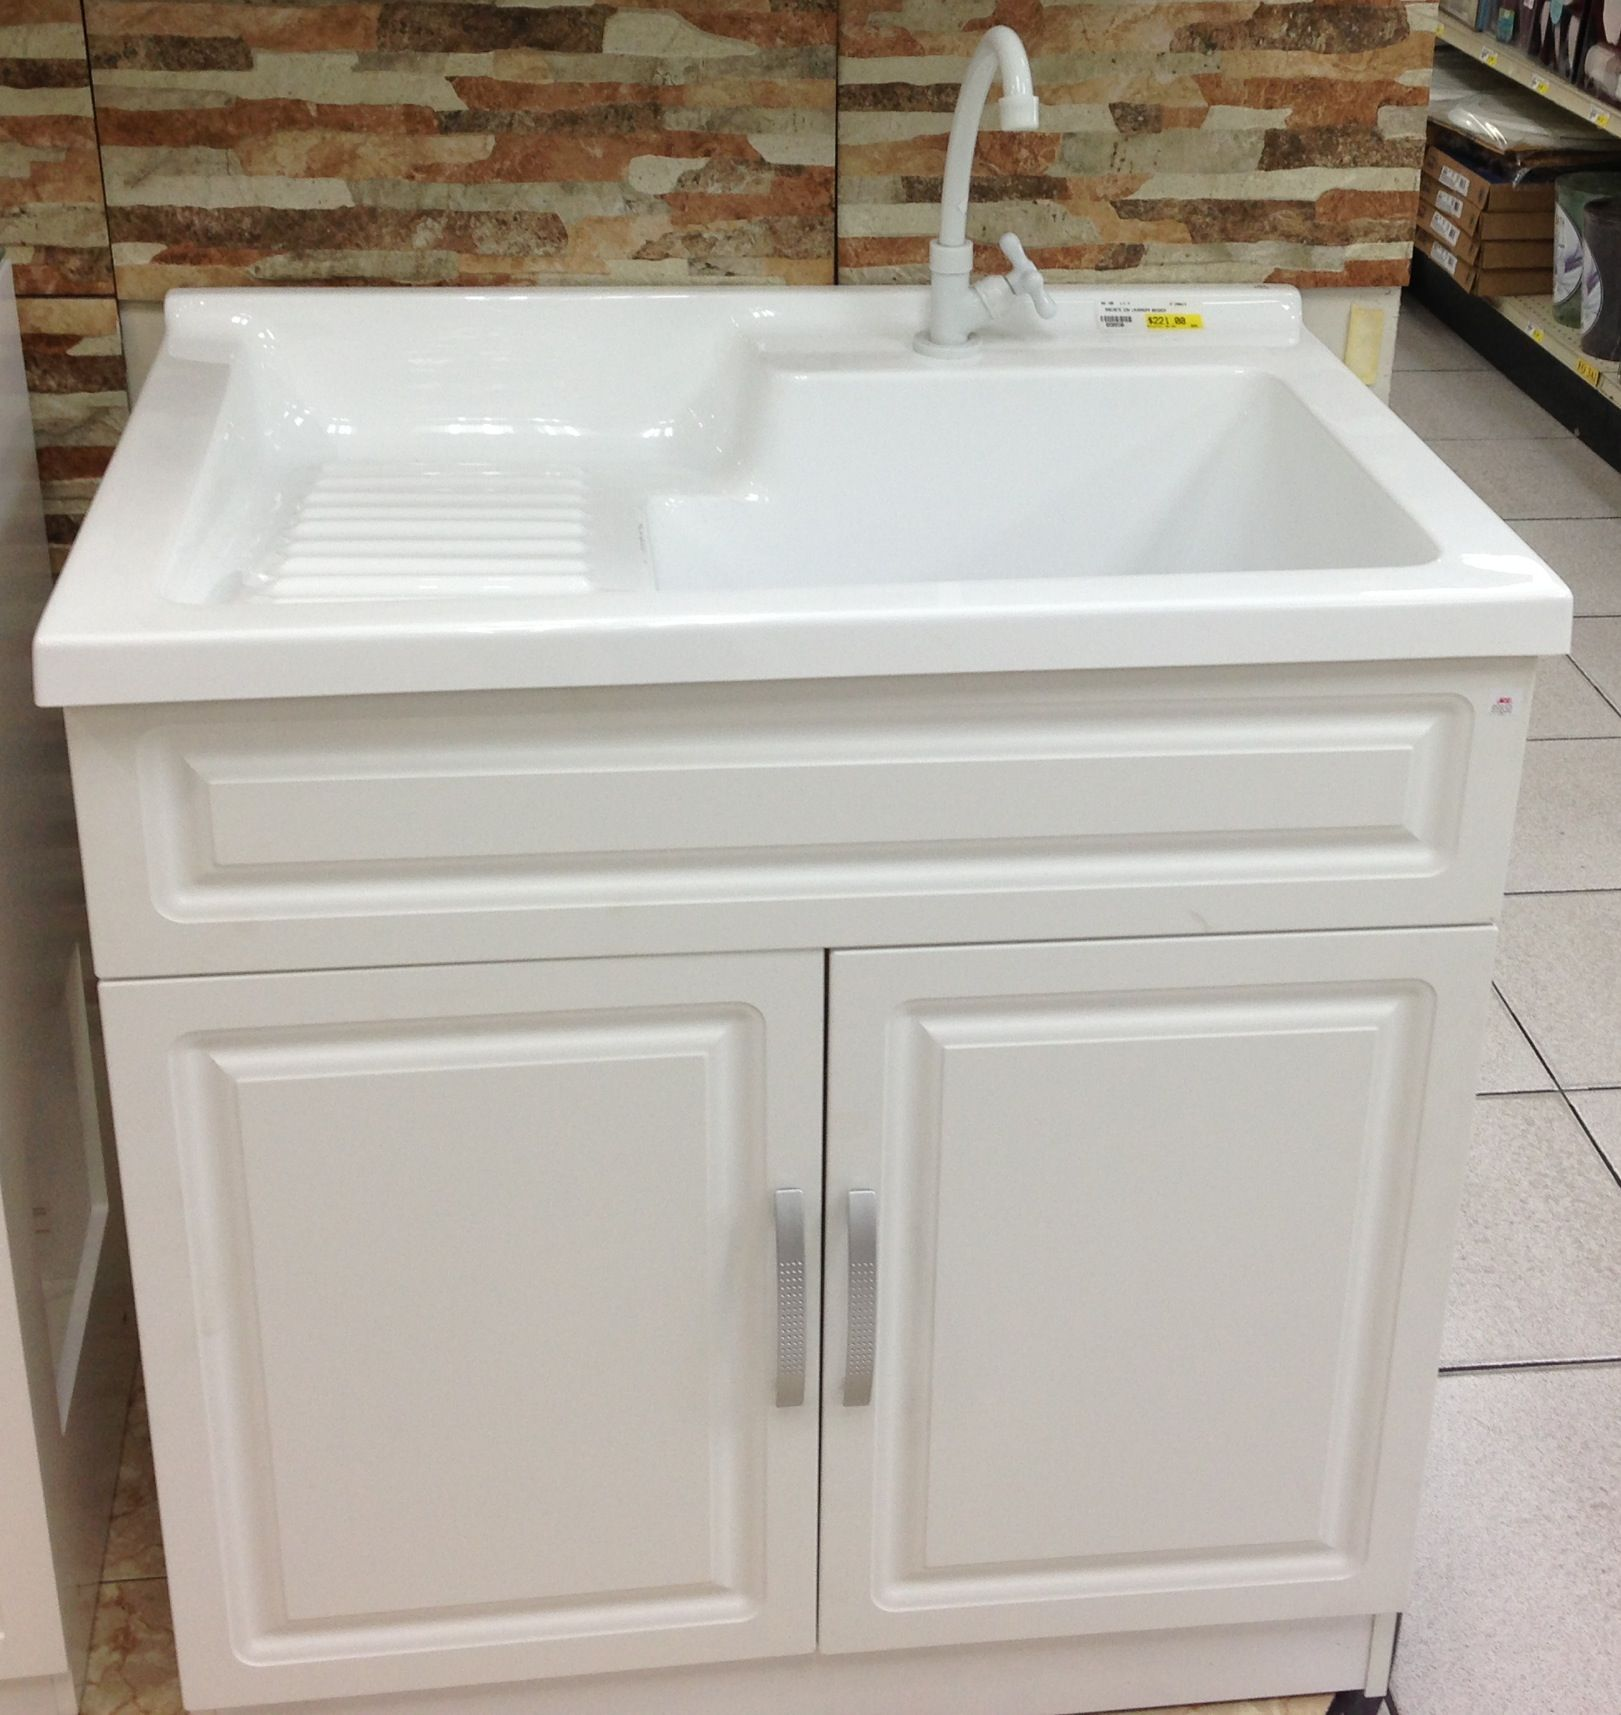 Functional Laundry Sink Corstone Self Rimming at Lowes for $145